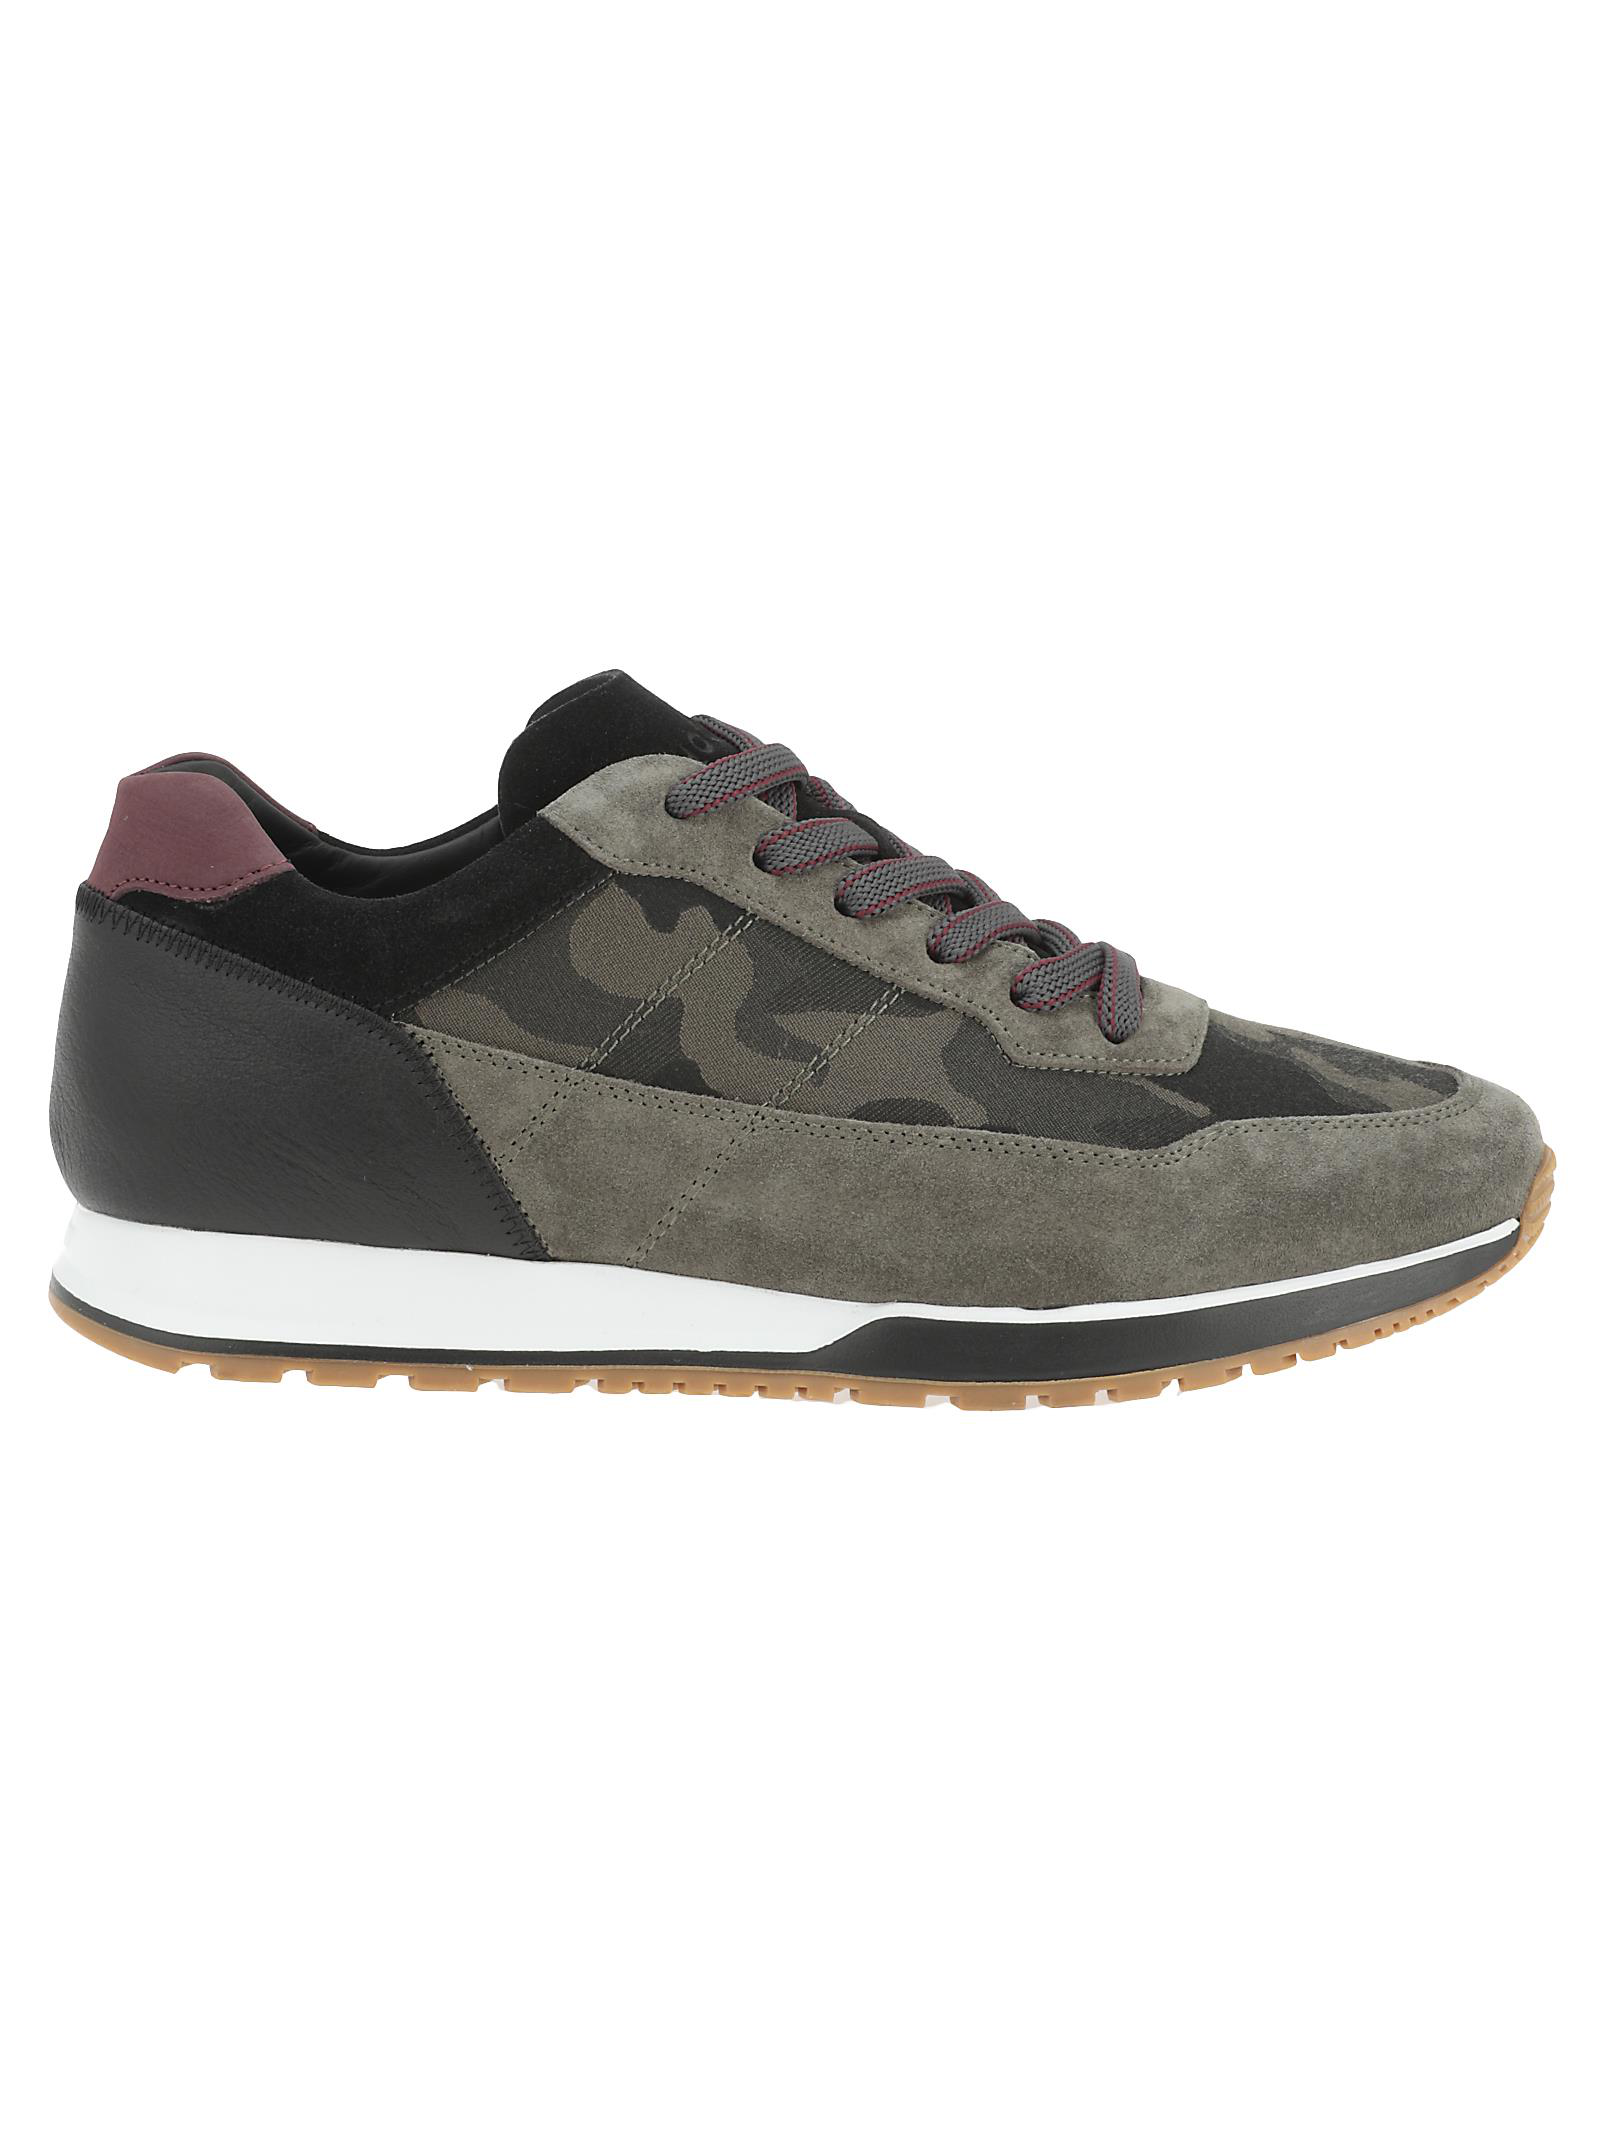 Hogan H321 Camouflage Print Sneakers In White   ModeSens